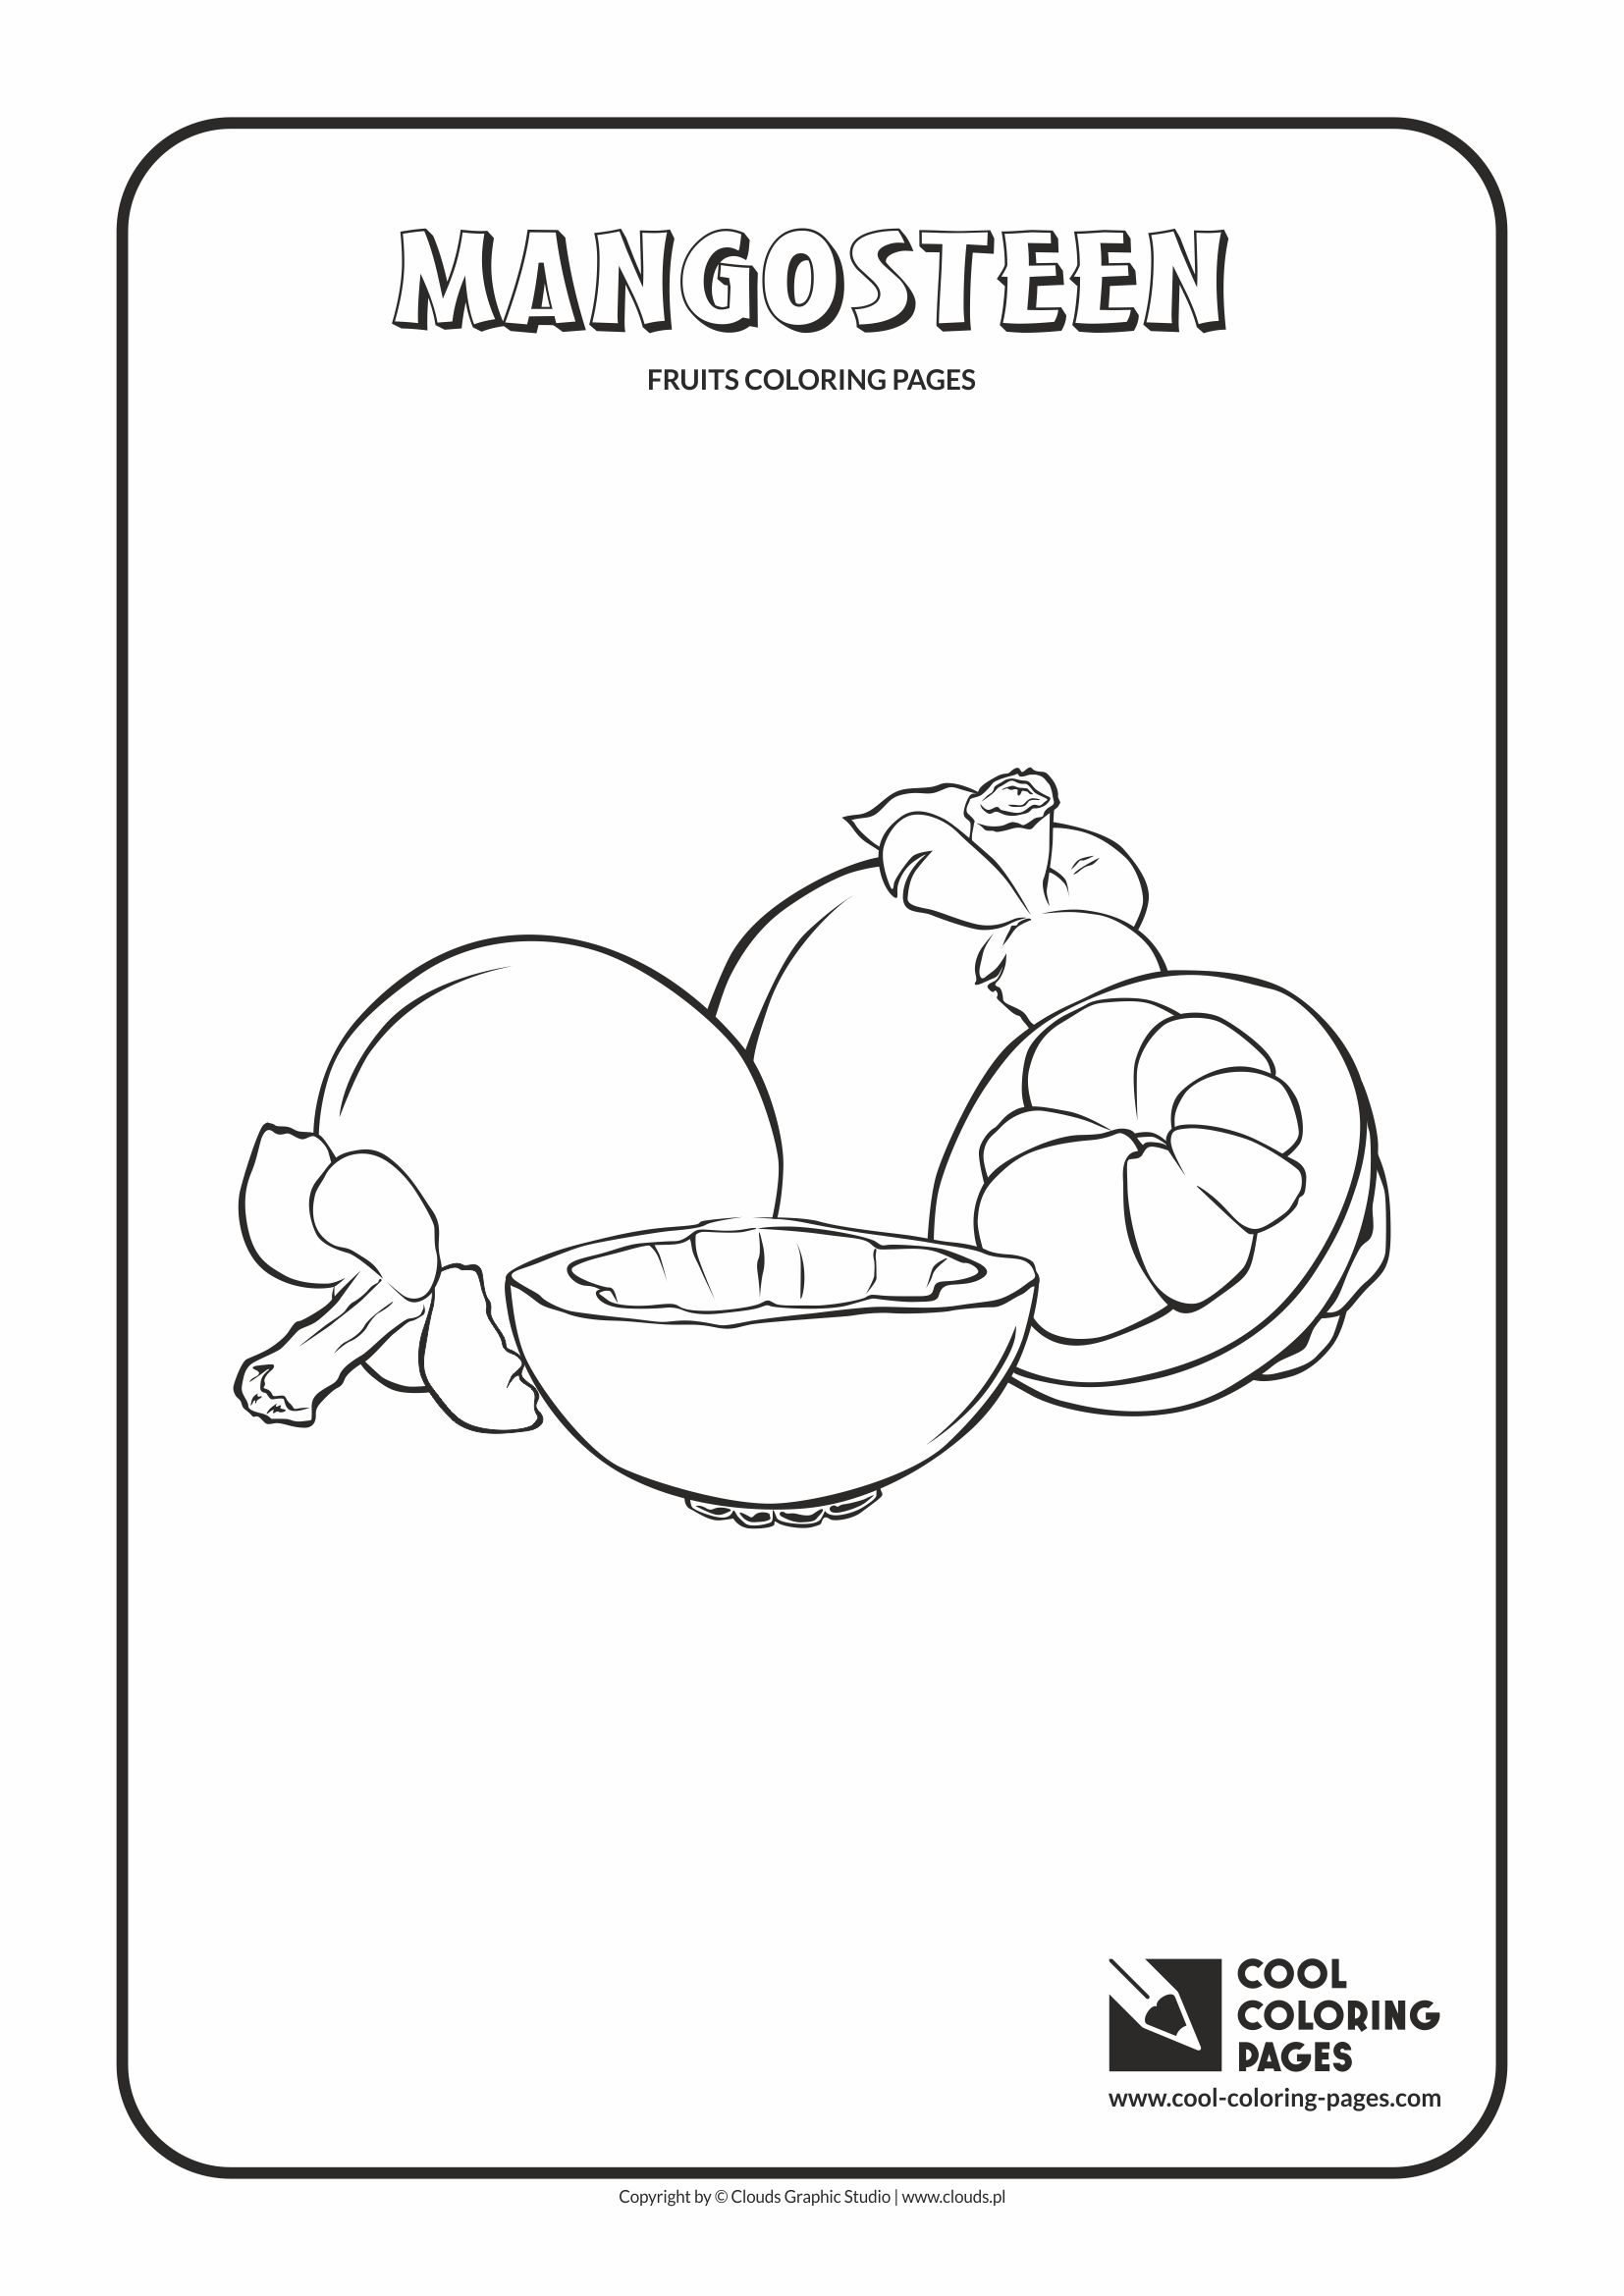 mangosteen coloring page circle time for kindergarten kids